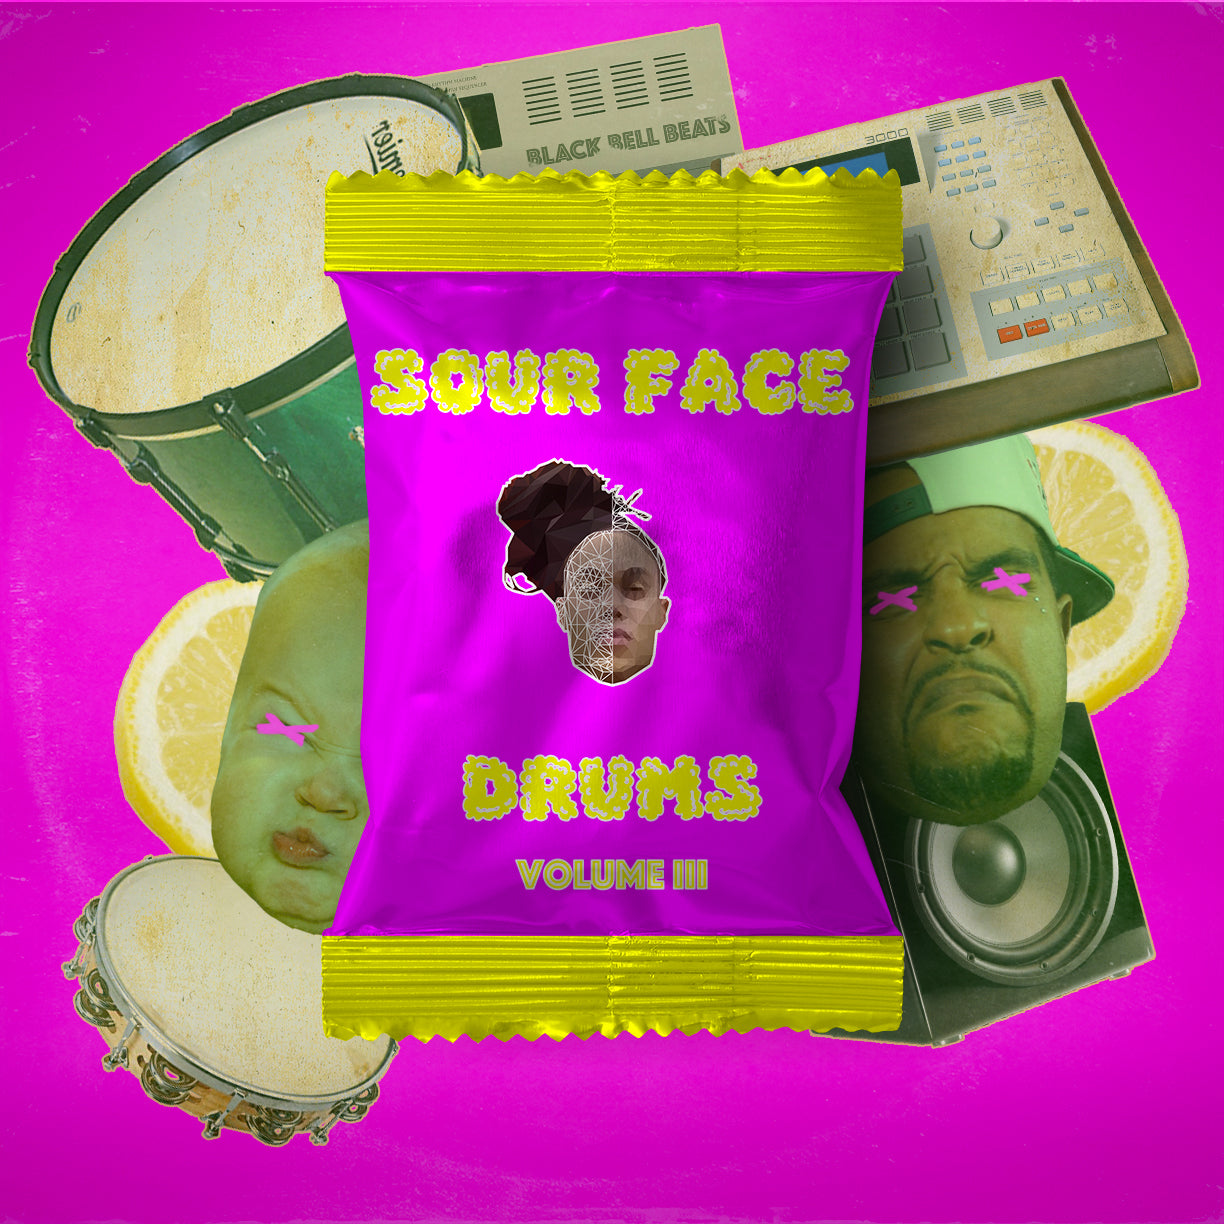 Sour Face Drums Vol 3